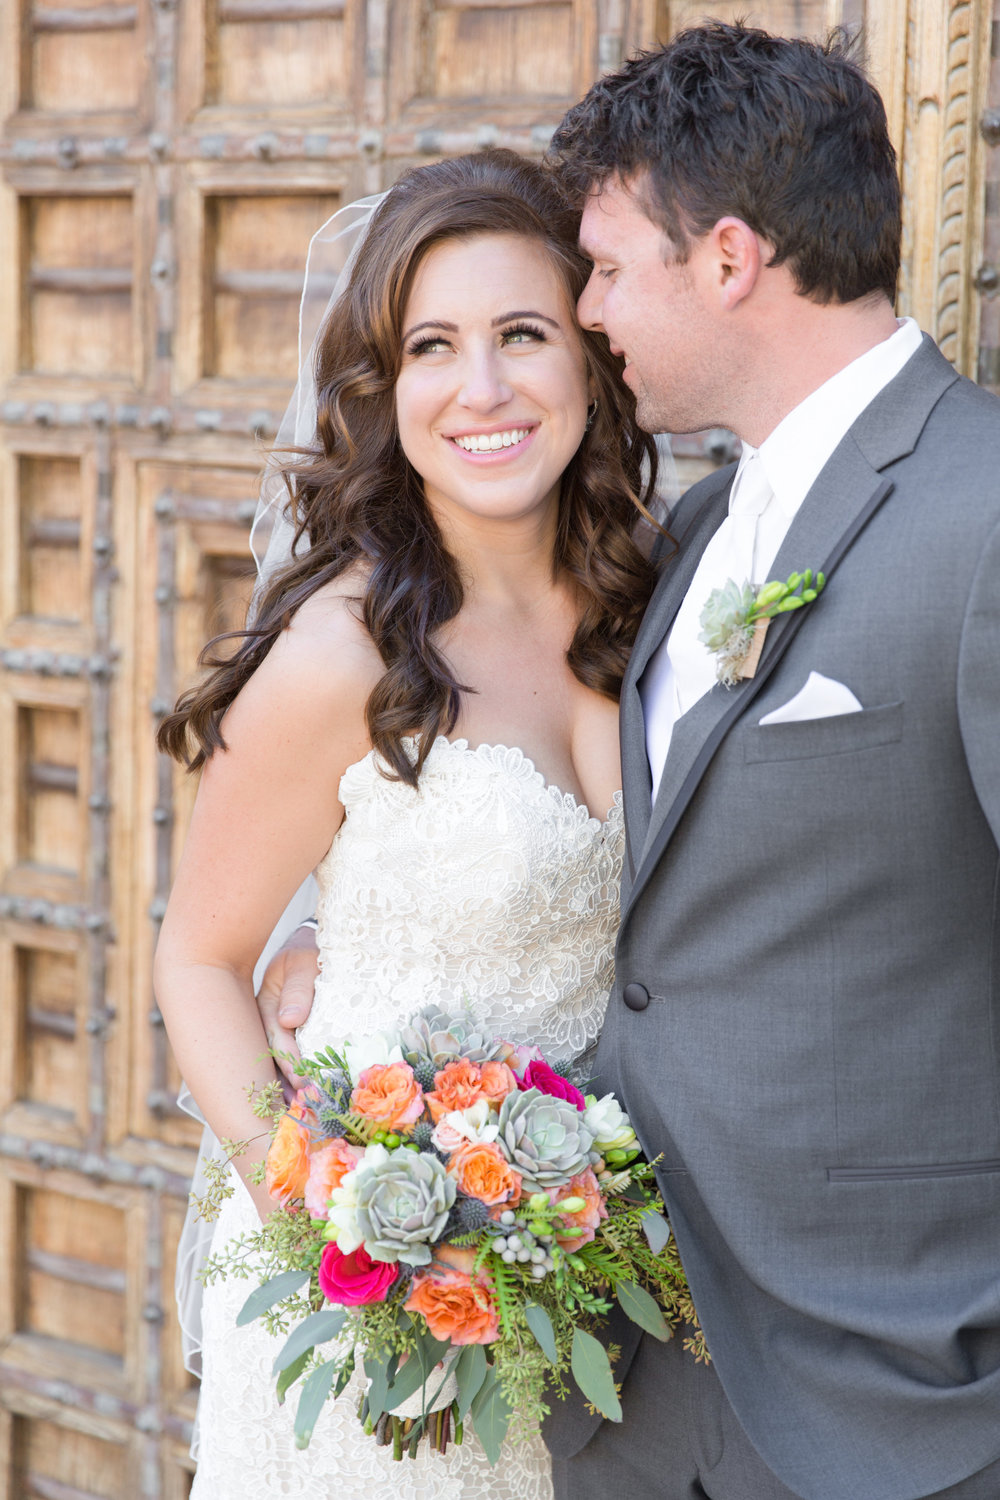 Phoenix-Scottsdale-Arizona-Wedding-Planner-Wedding-Venue-Destination-Wedding-Planner, Omni Montelucia weddings, sunset weddings, Arizona Sunset weddings, wedding details, bridal bouquet, succulent bouquets, orange pink blue green flowers, bride and groom, groom gray suit, gray suit wedding